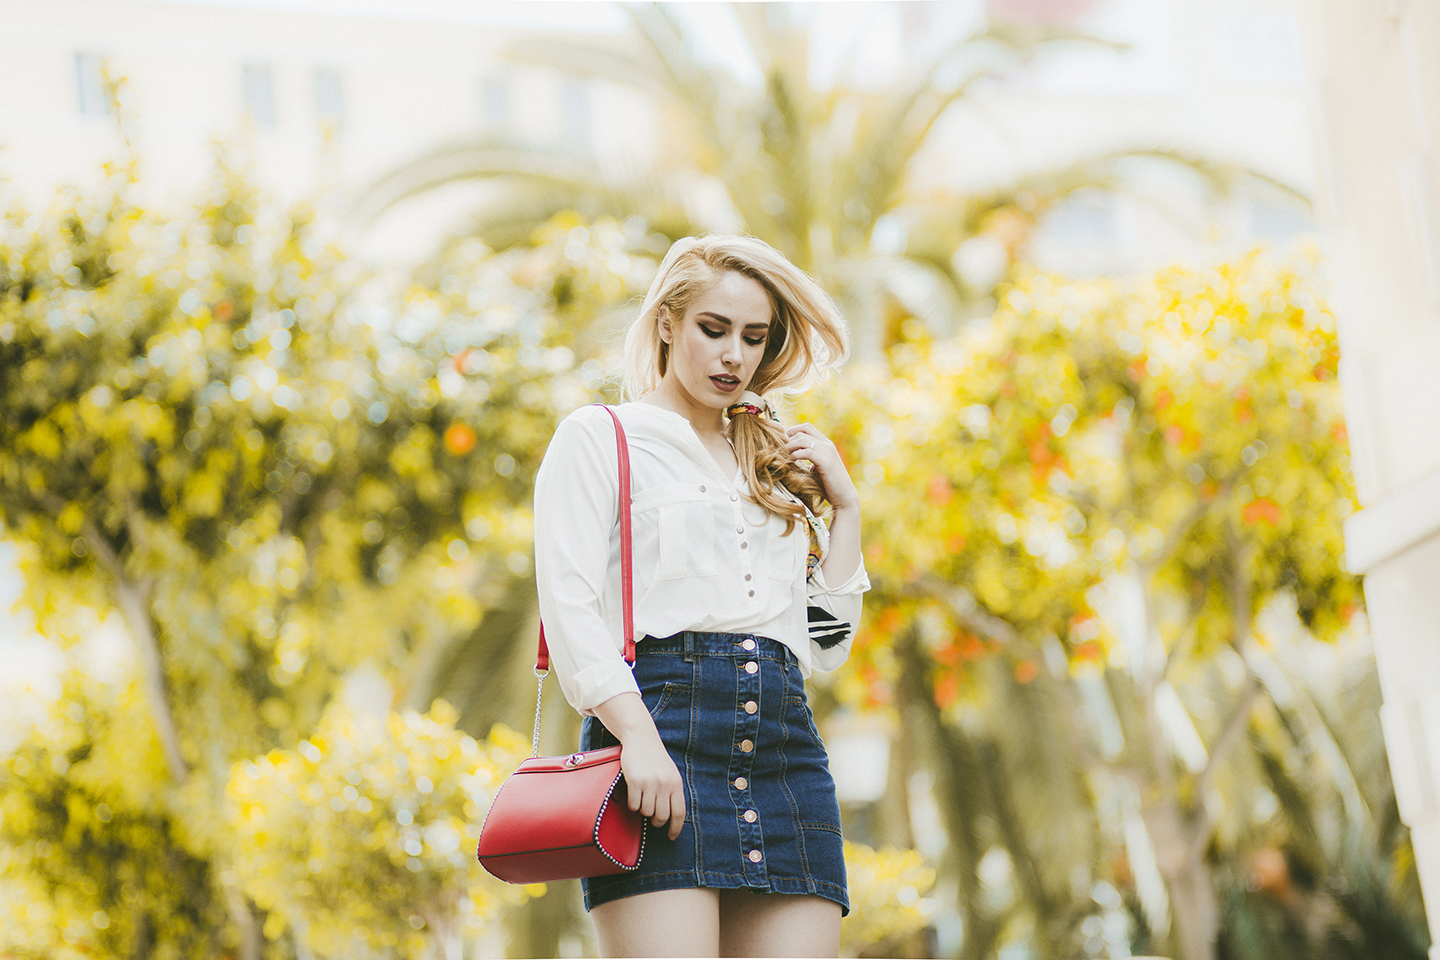 Patripaan spring outfit with denim skirt and white shirt.